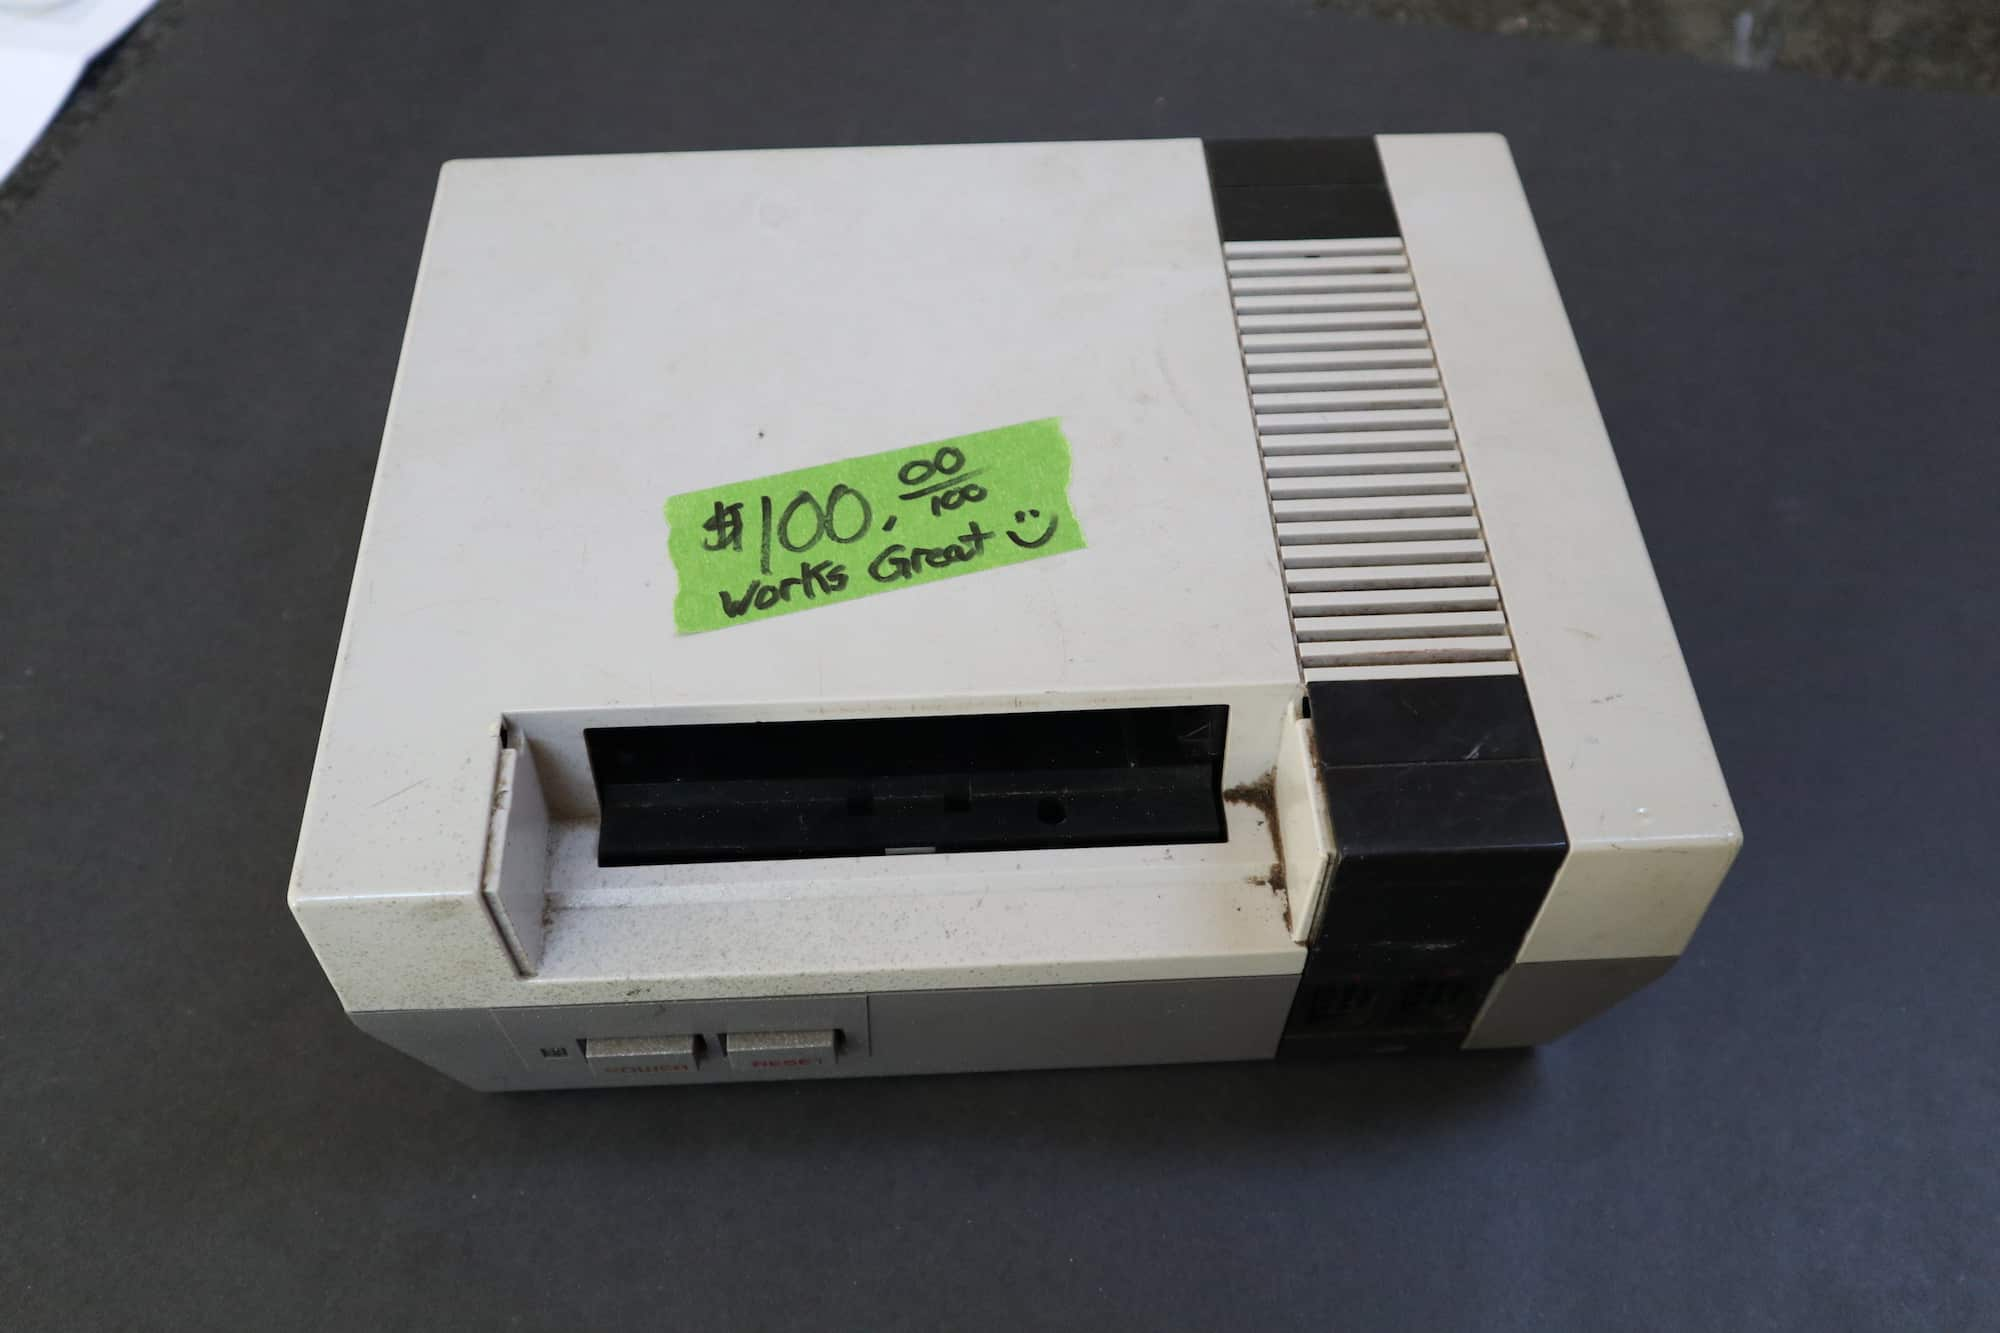 a picture of a garage sale nes system